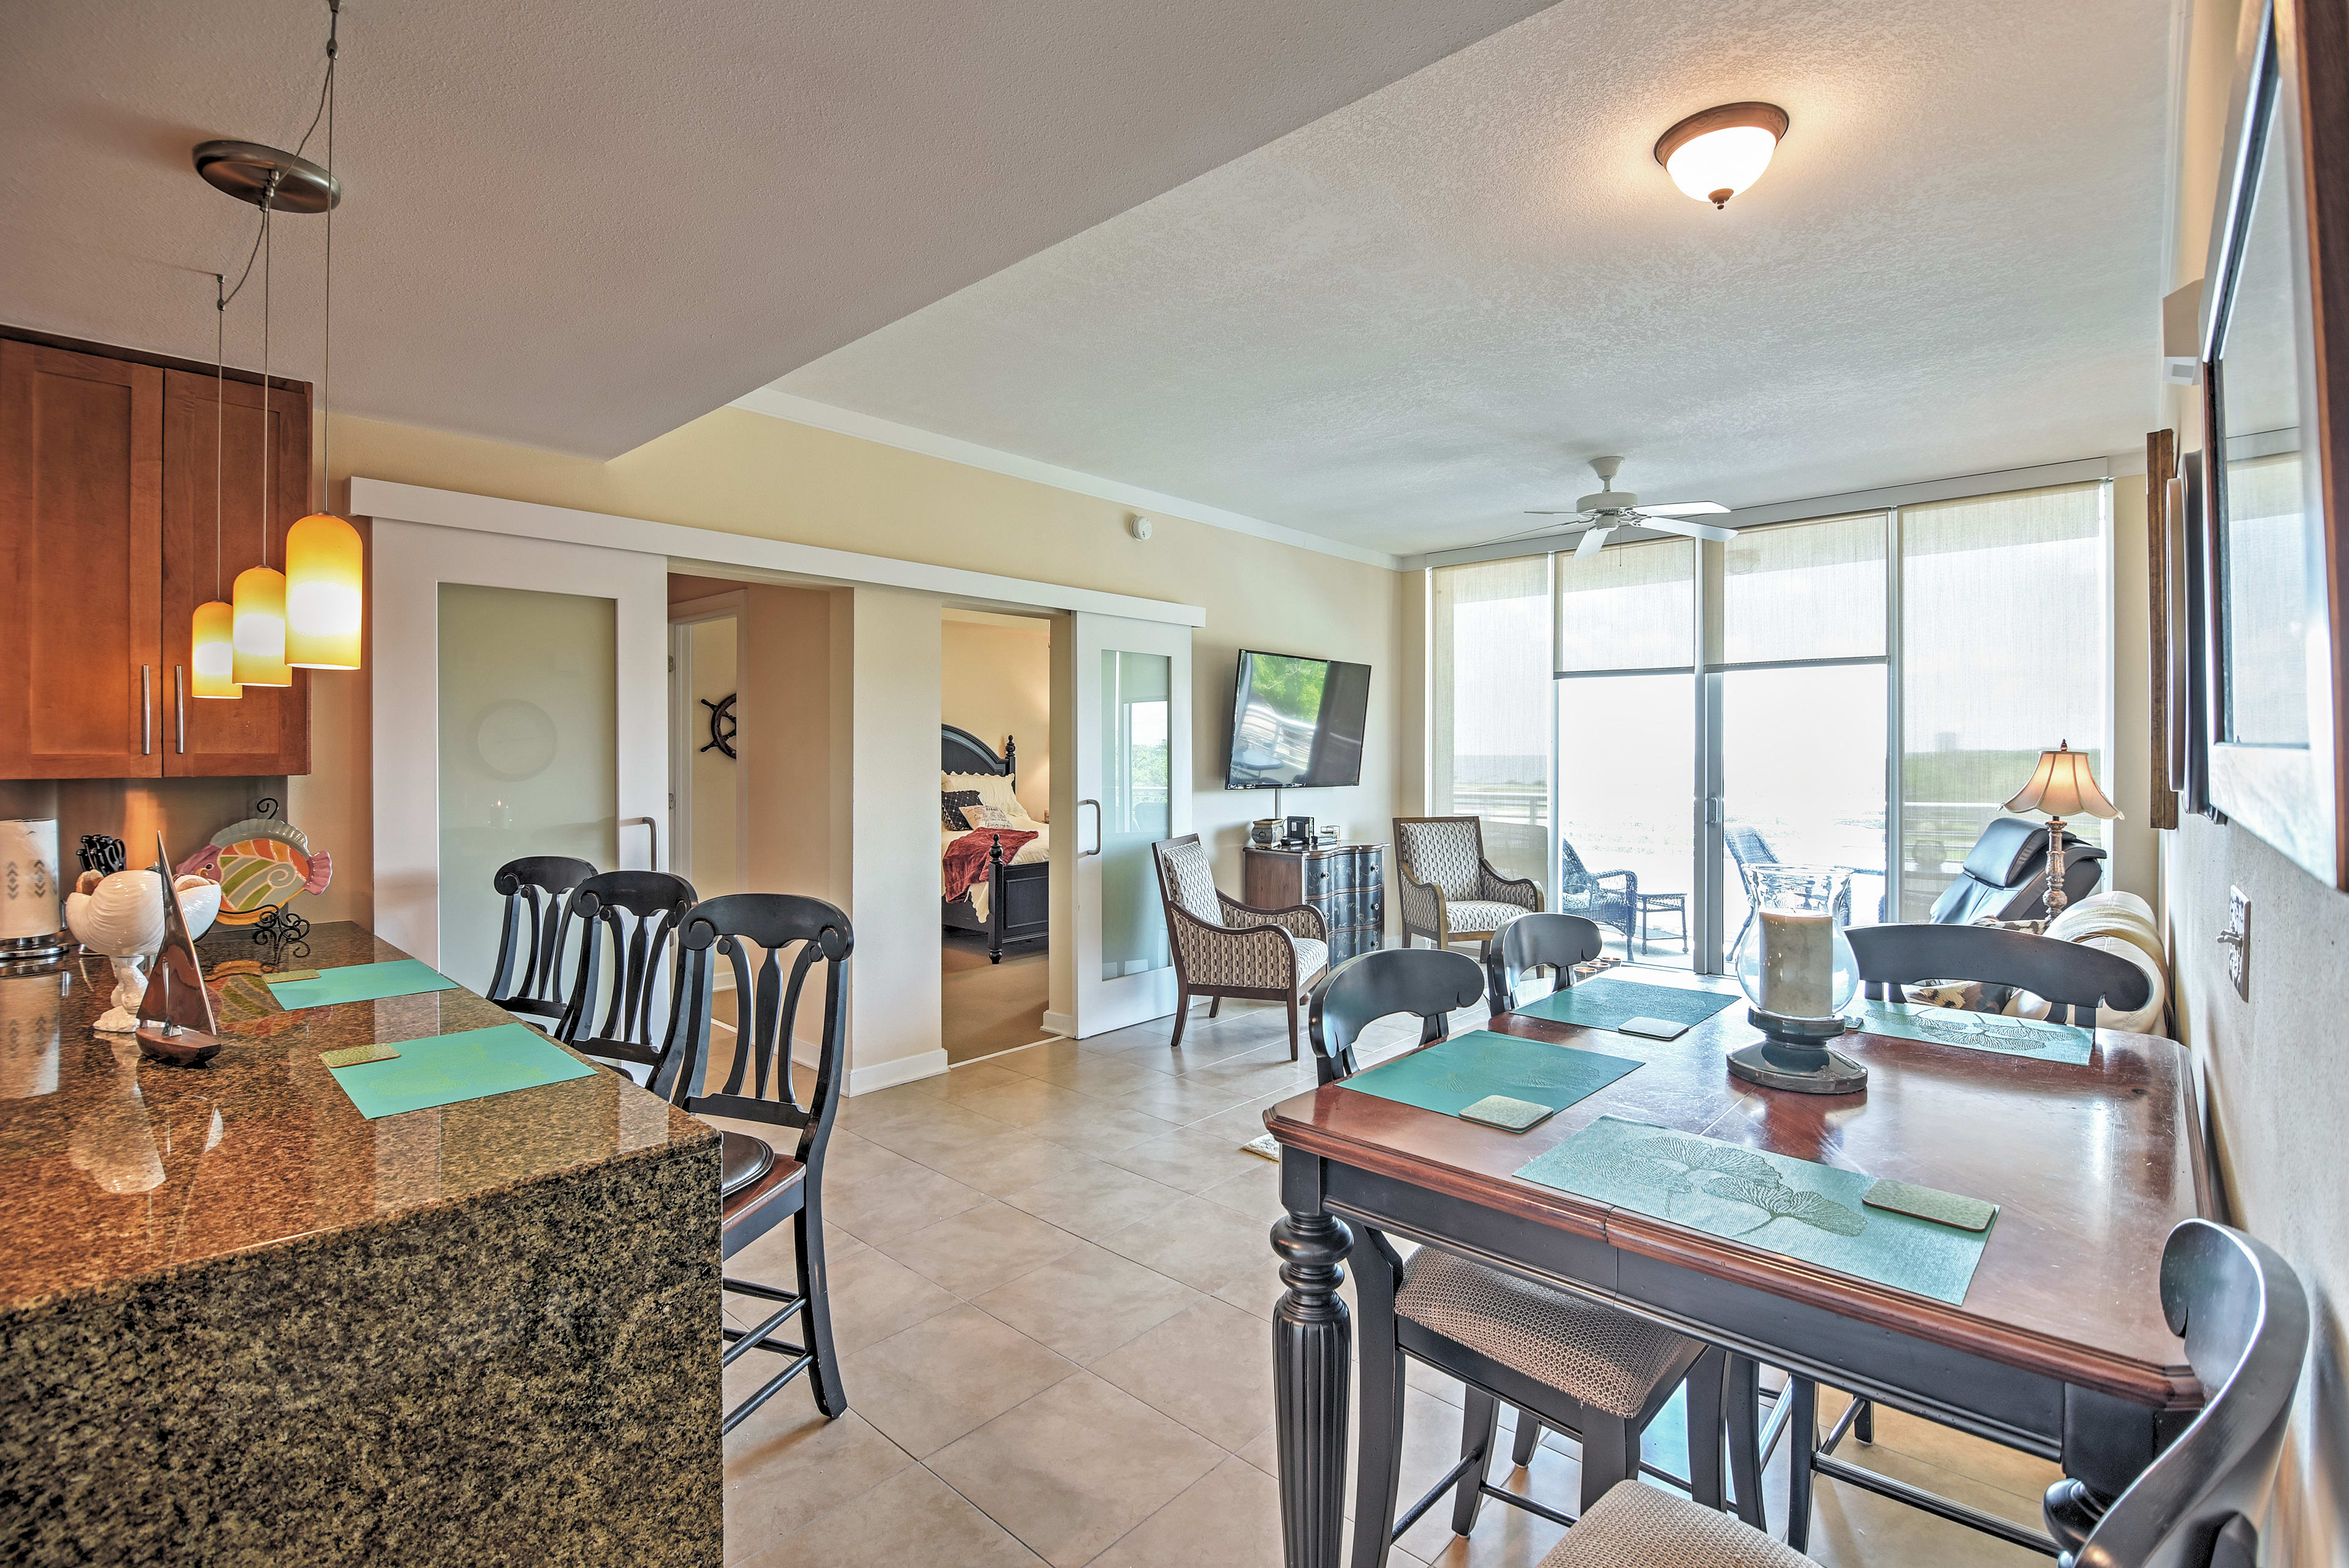 You'll be greeted by ocean views the moment you step foot in this sleek condo.